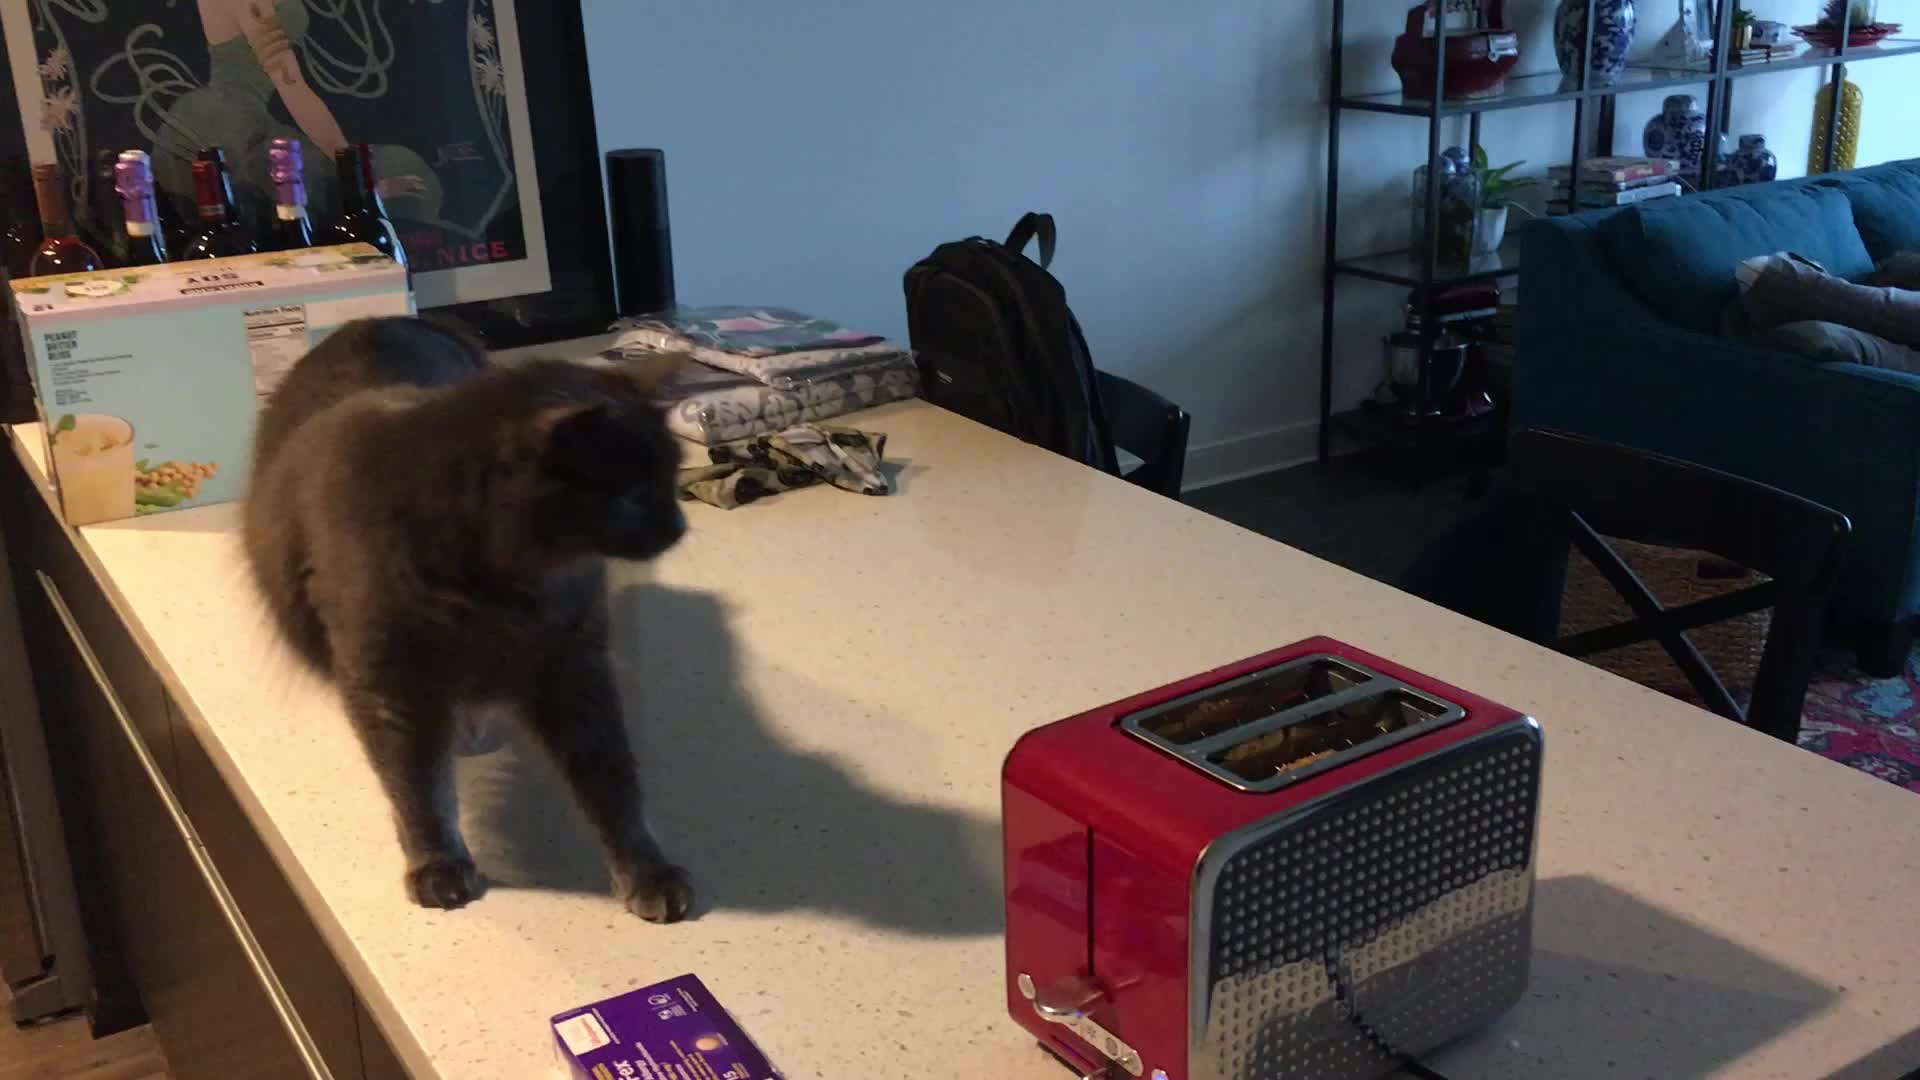 bagel, cat, scared, DASH 9 6 M GIFs